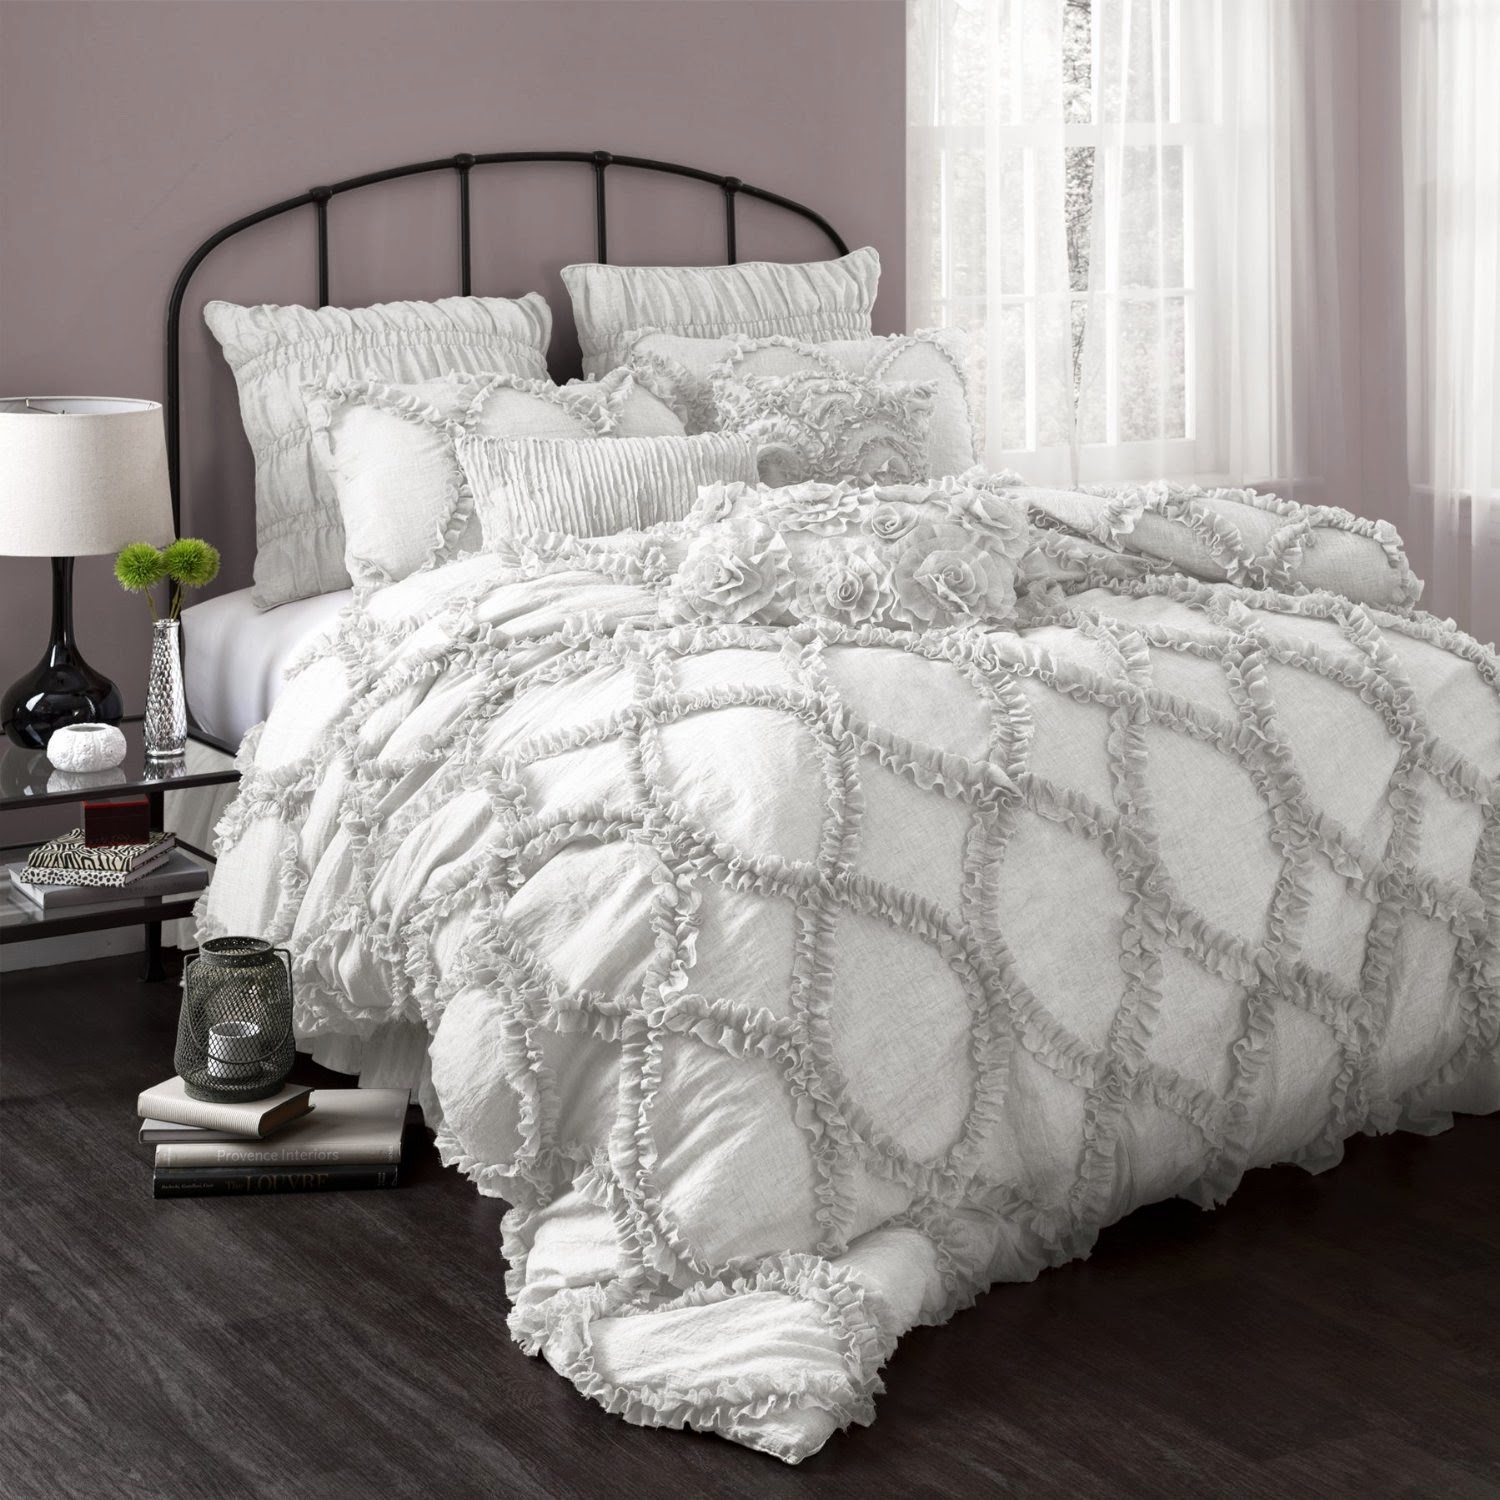 Home Decor White Lamp And White Sheets Ruffle forter